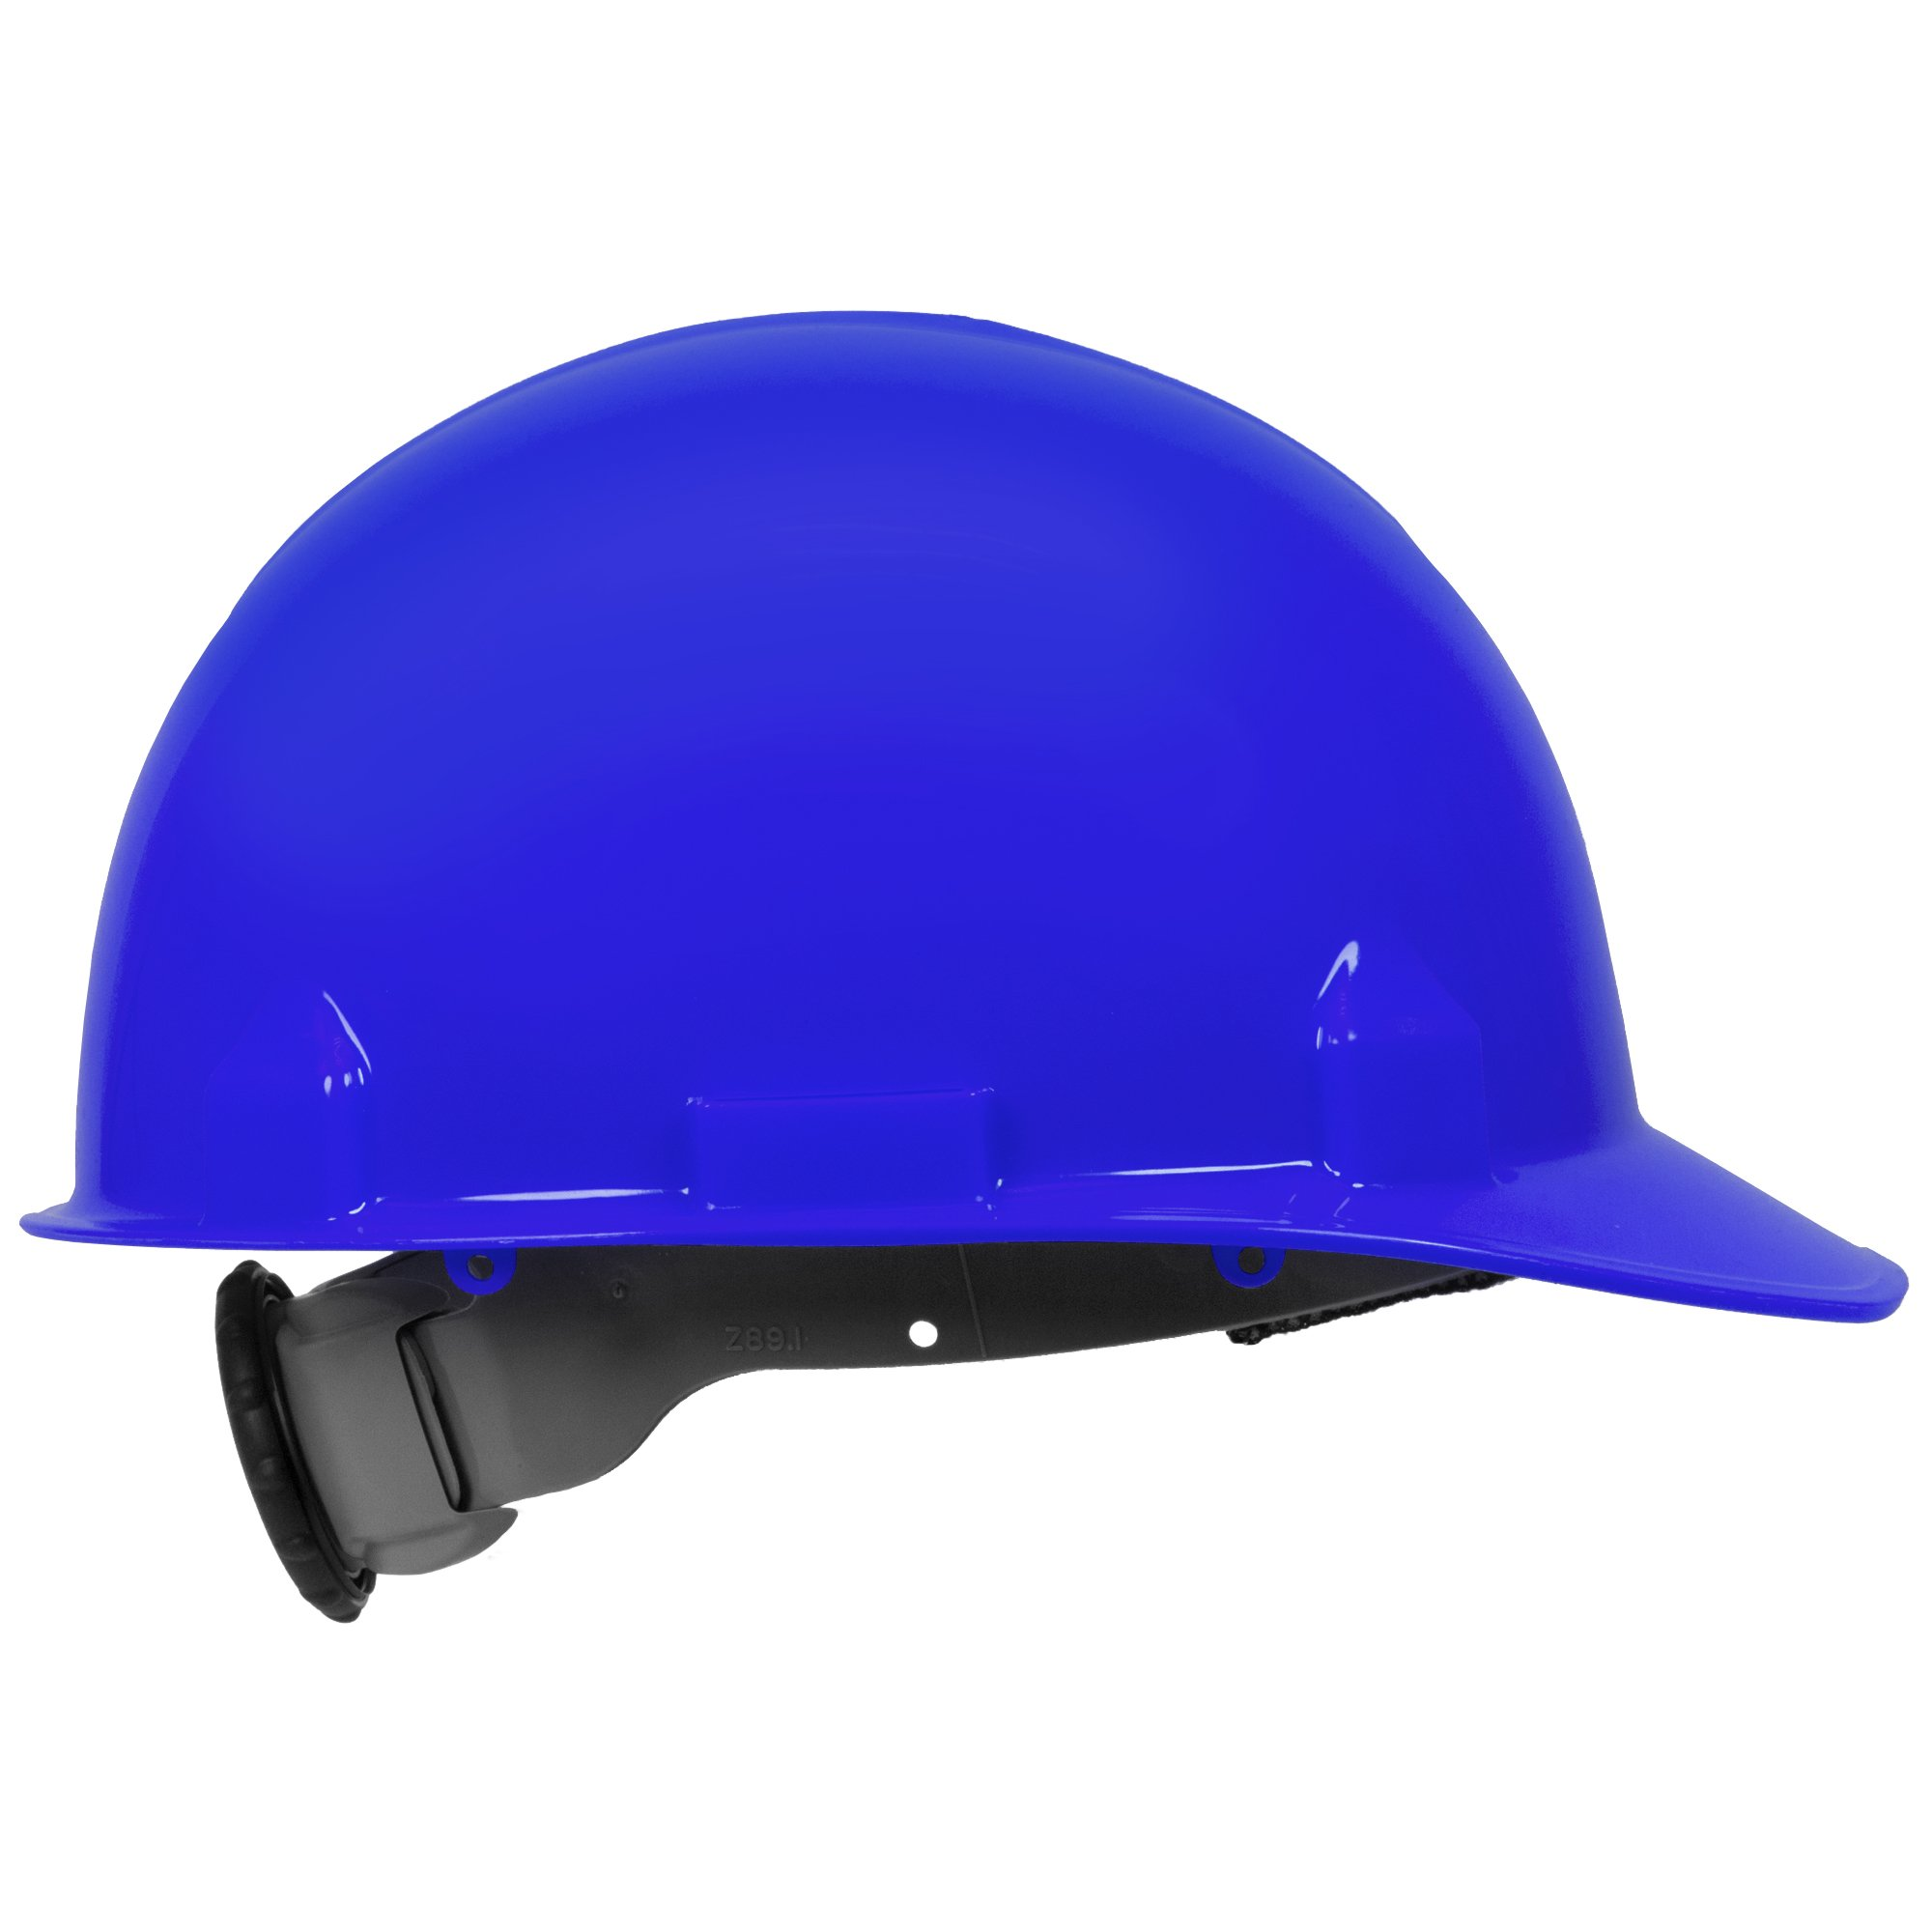 Jackson Safety SC-6 Hard Hat (14838), 4-Point Ratchet Suspension, Smooth Dome, Meets ANSI, Blue, 12 / Case by Jackson Safety (Image #3)